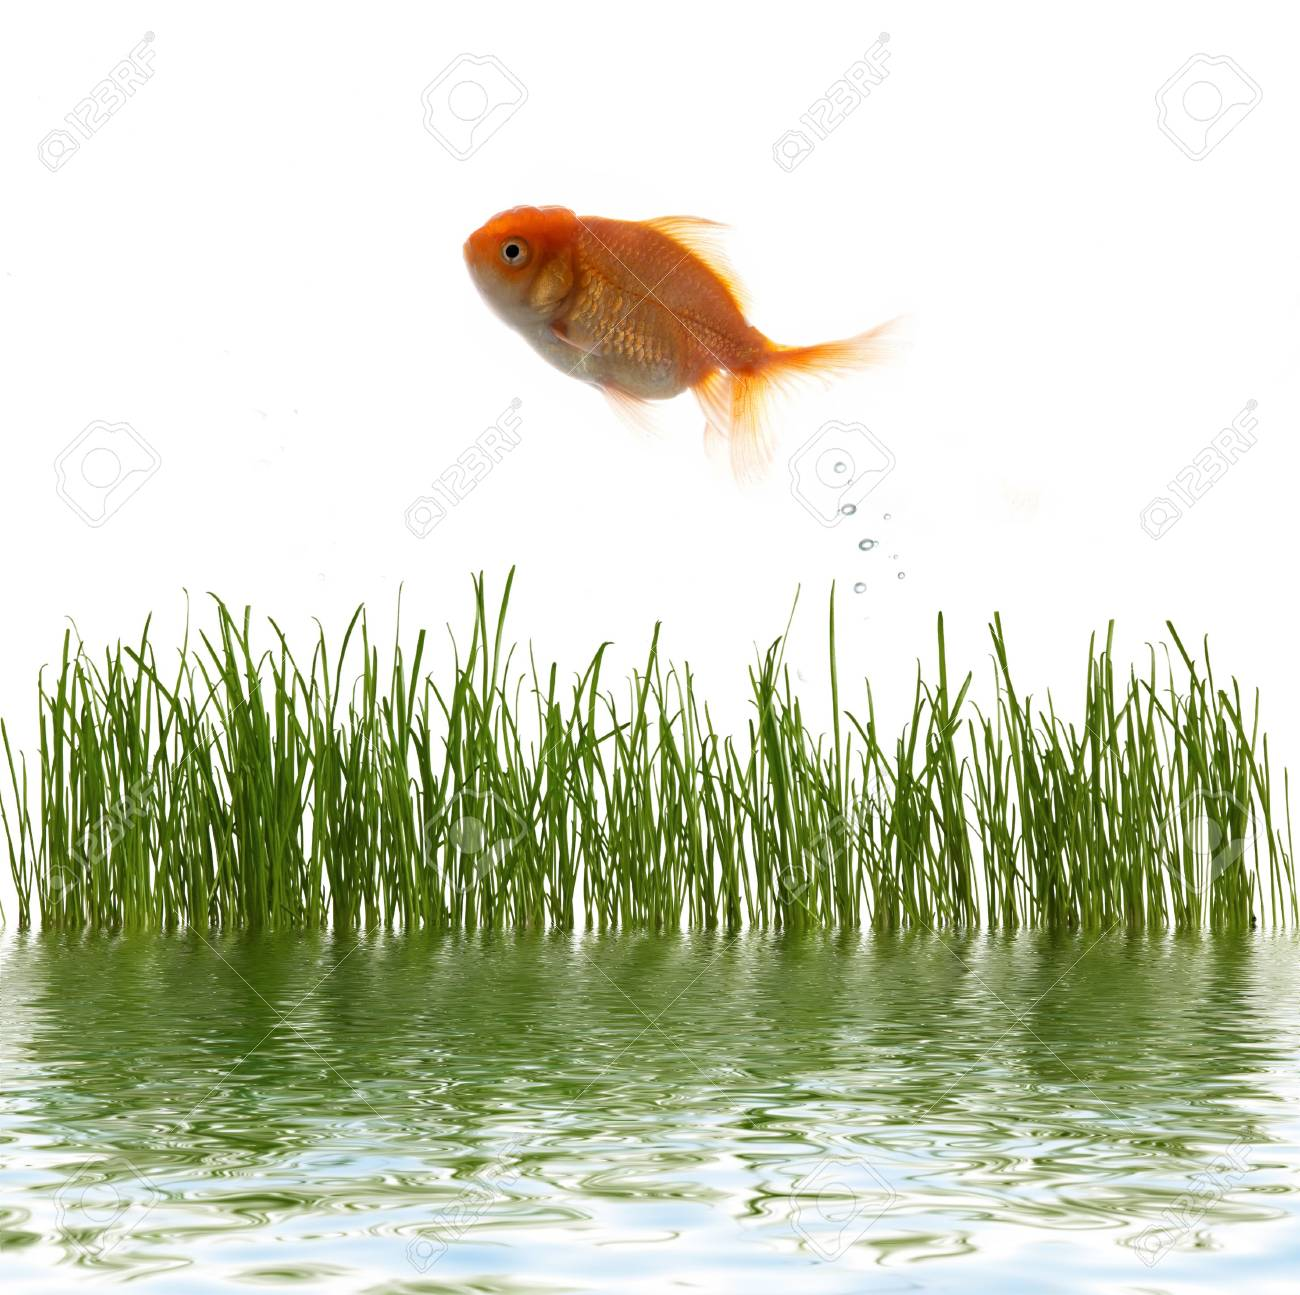 An image of fresh grass an goldfish Stock Photo - 3228434